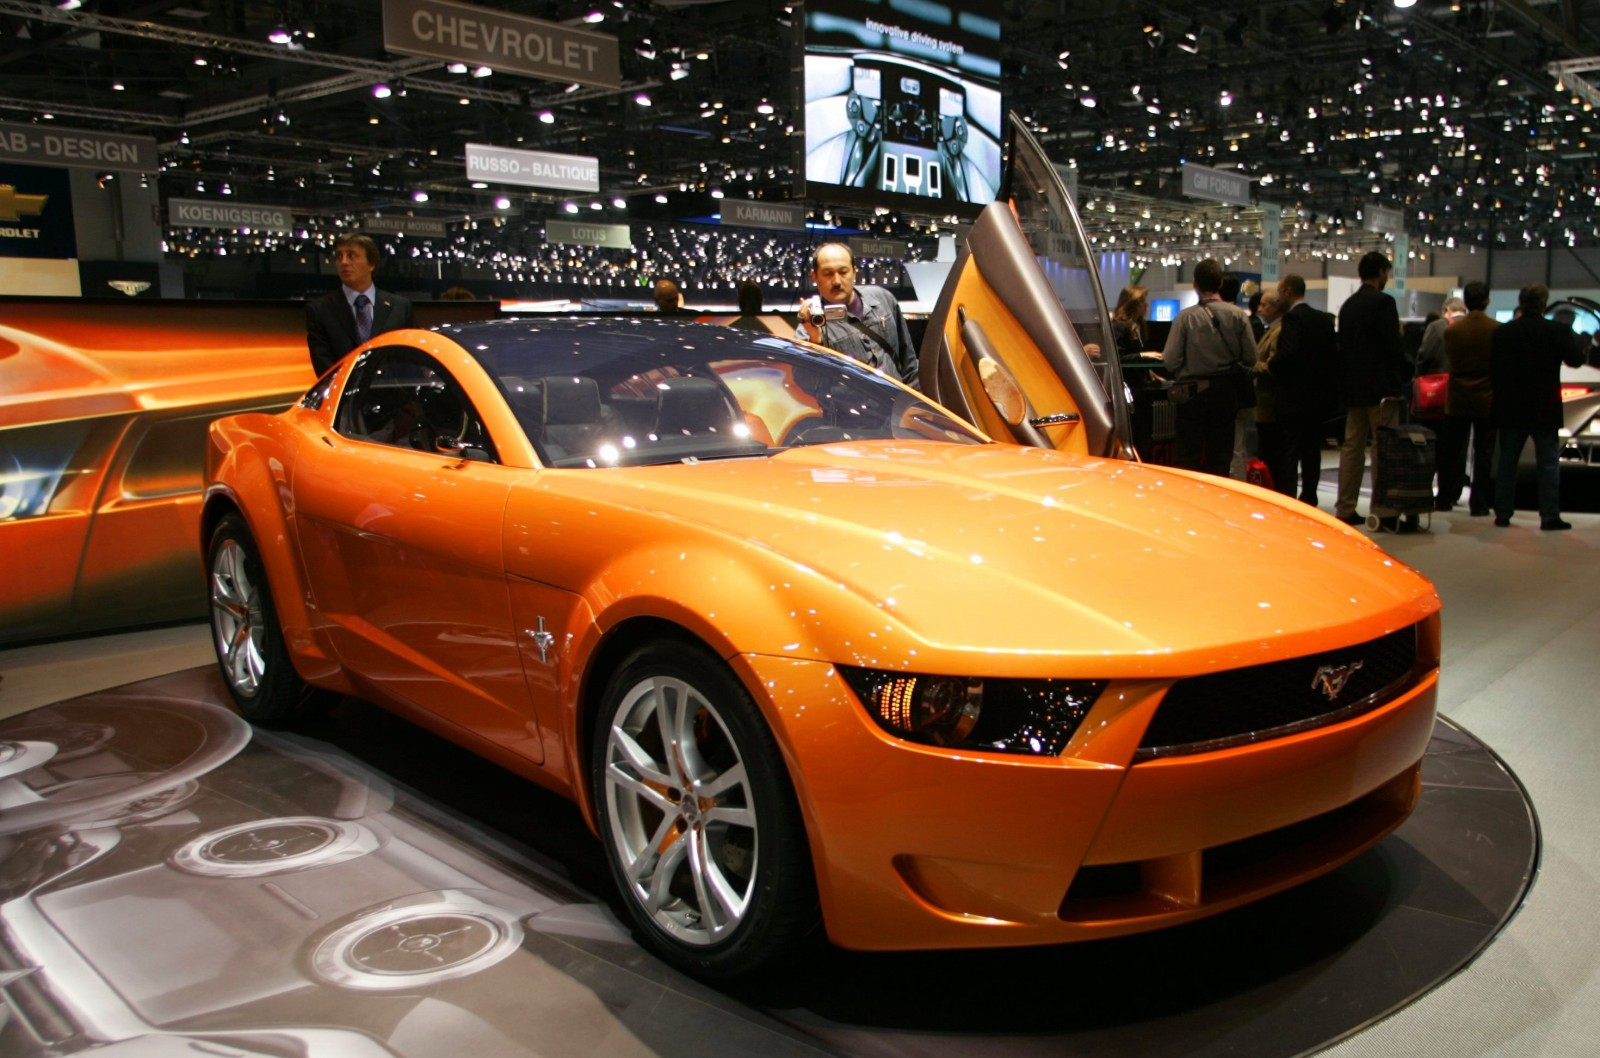 2006 Giugiaro Ford Mustang Concept Was Ringer vs In-House Ford Designs 2